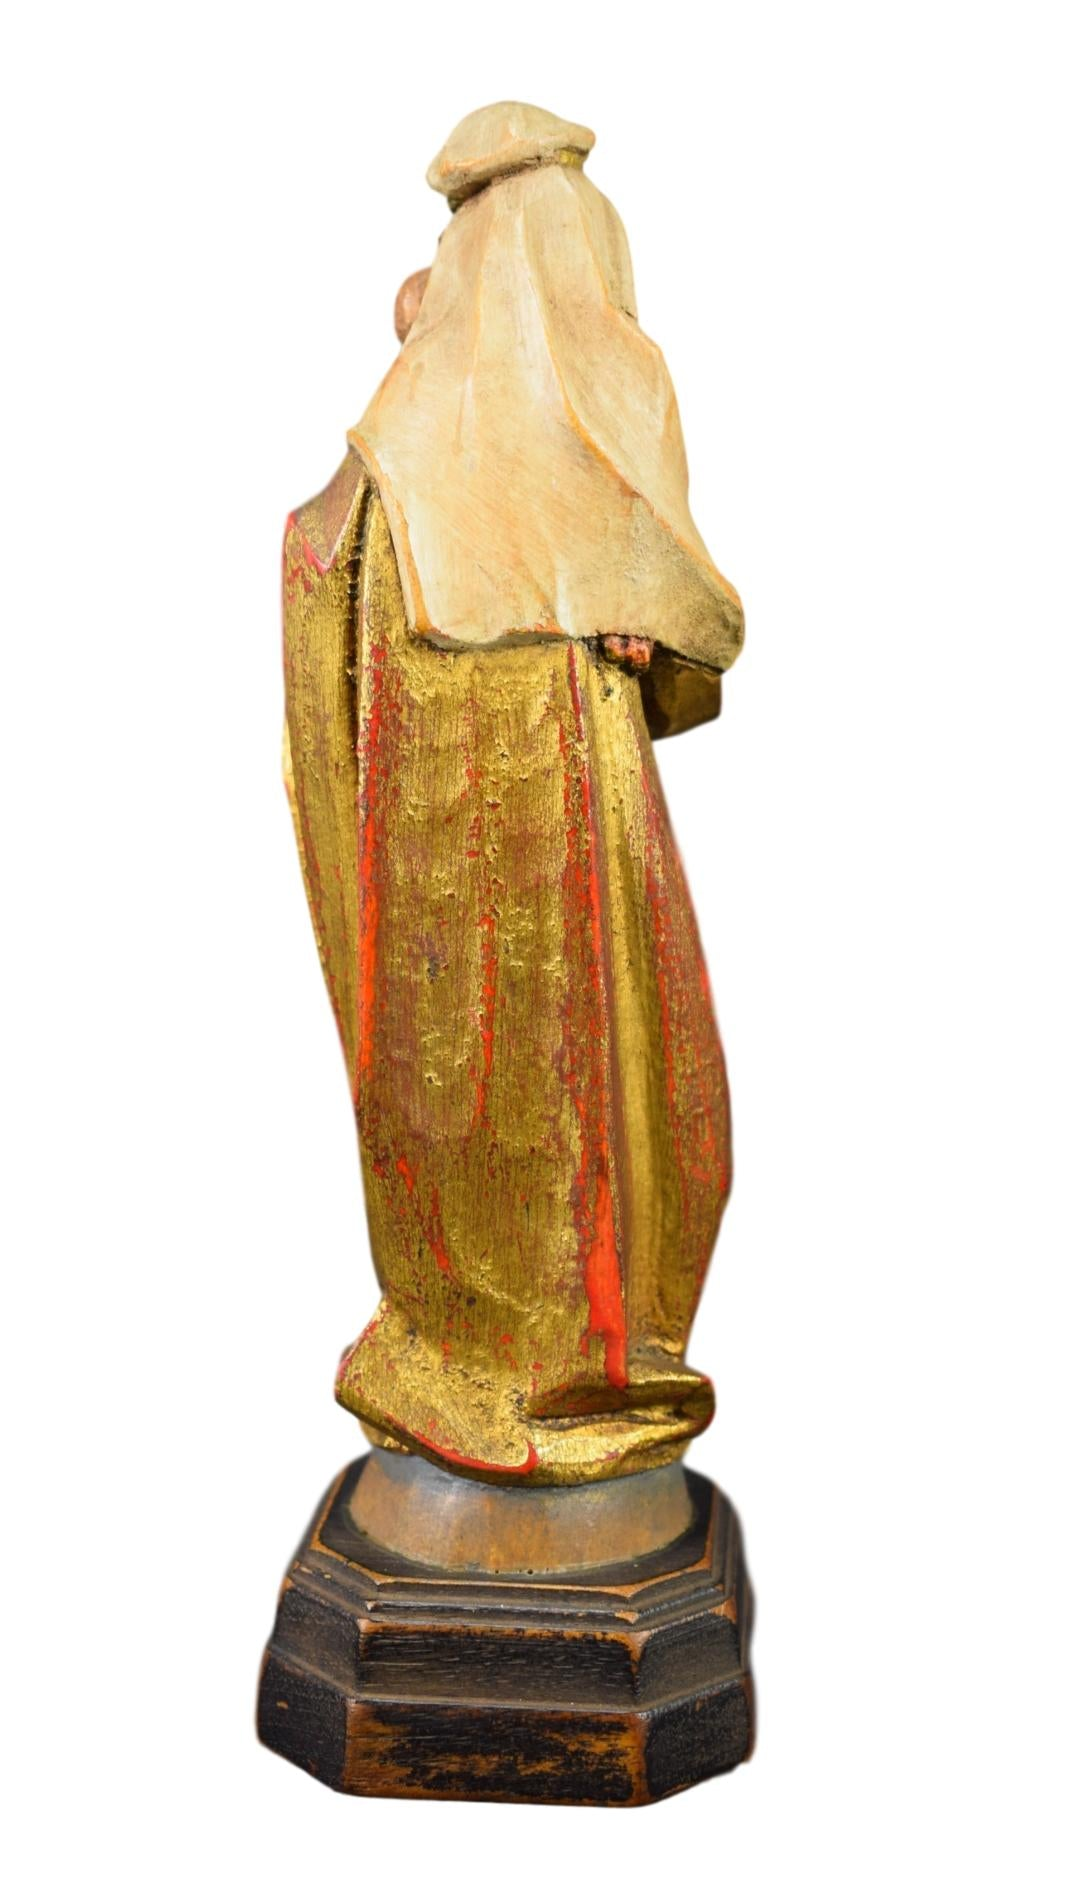 Wood Carved Religious Statue - Charmantiques